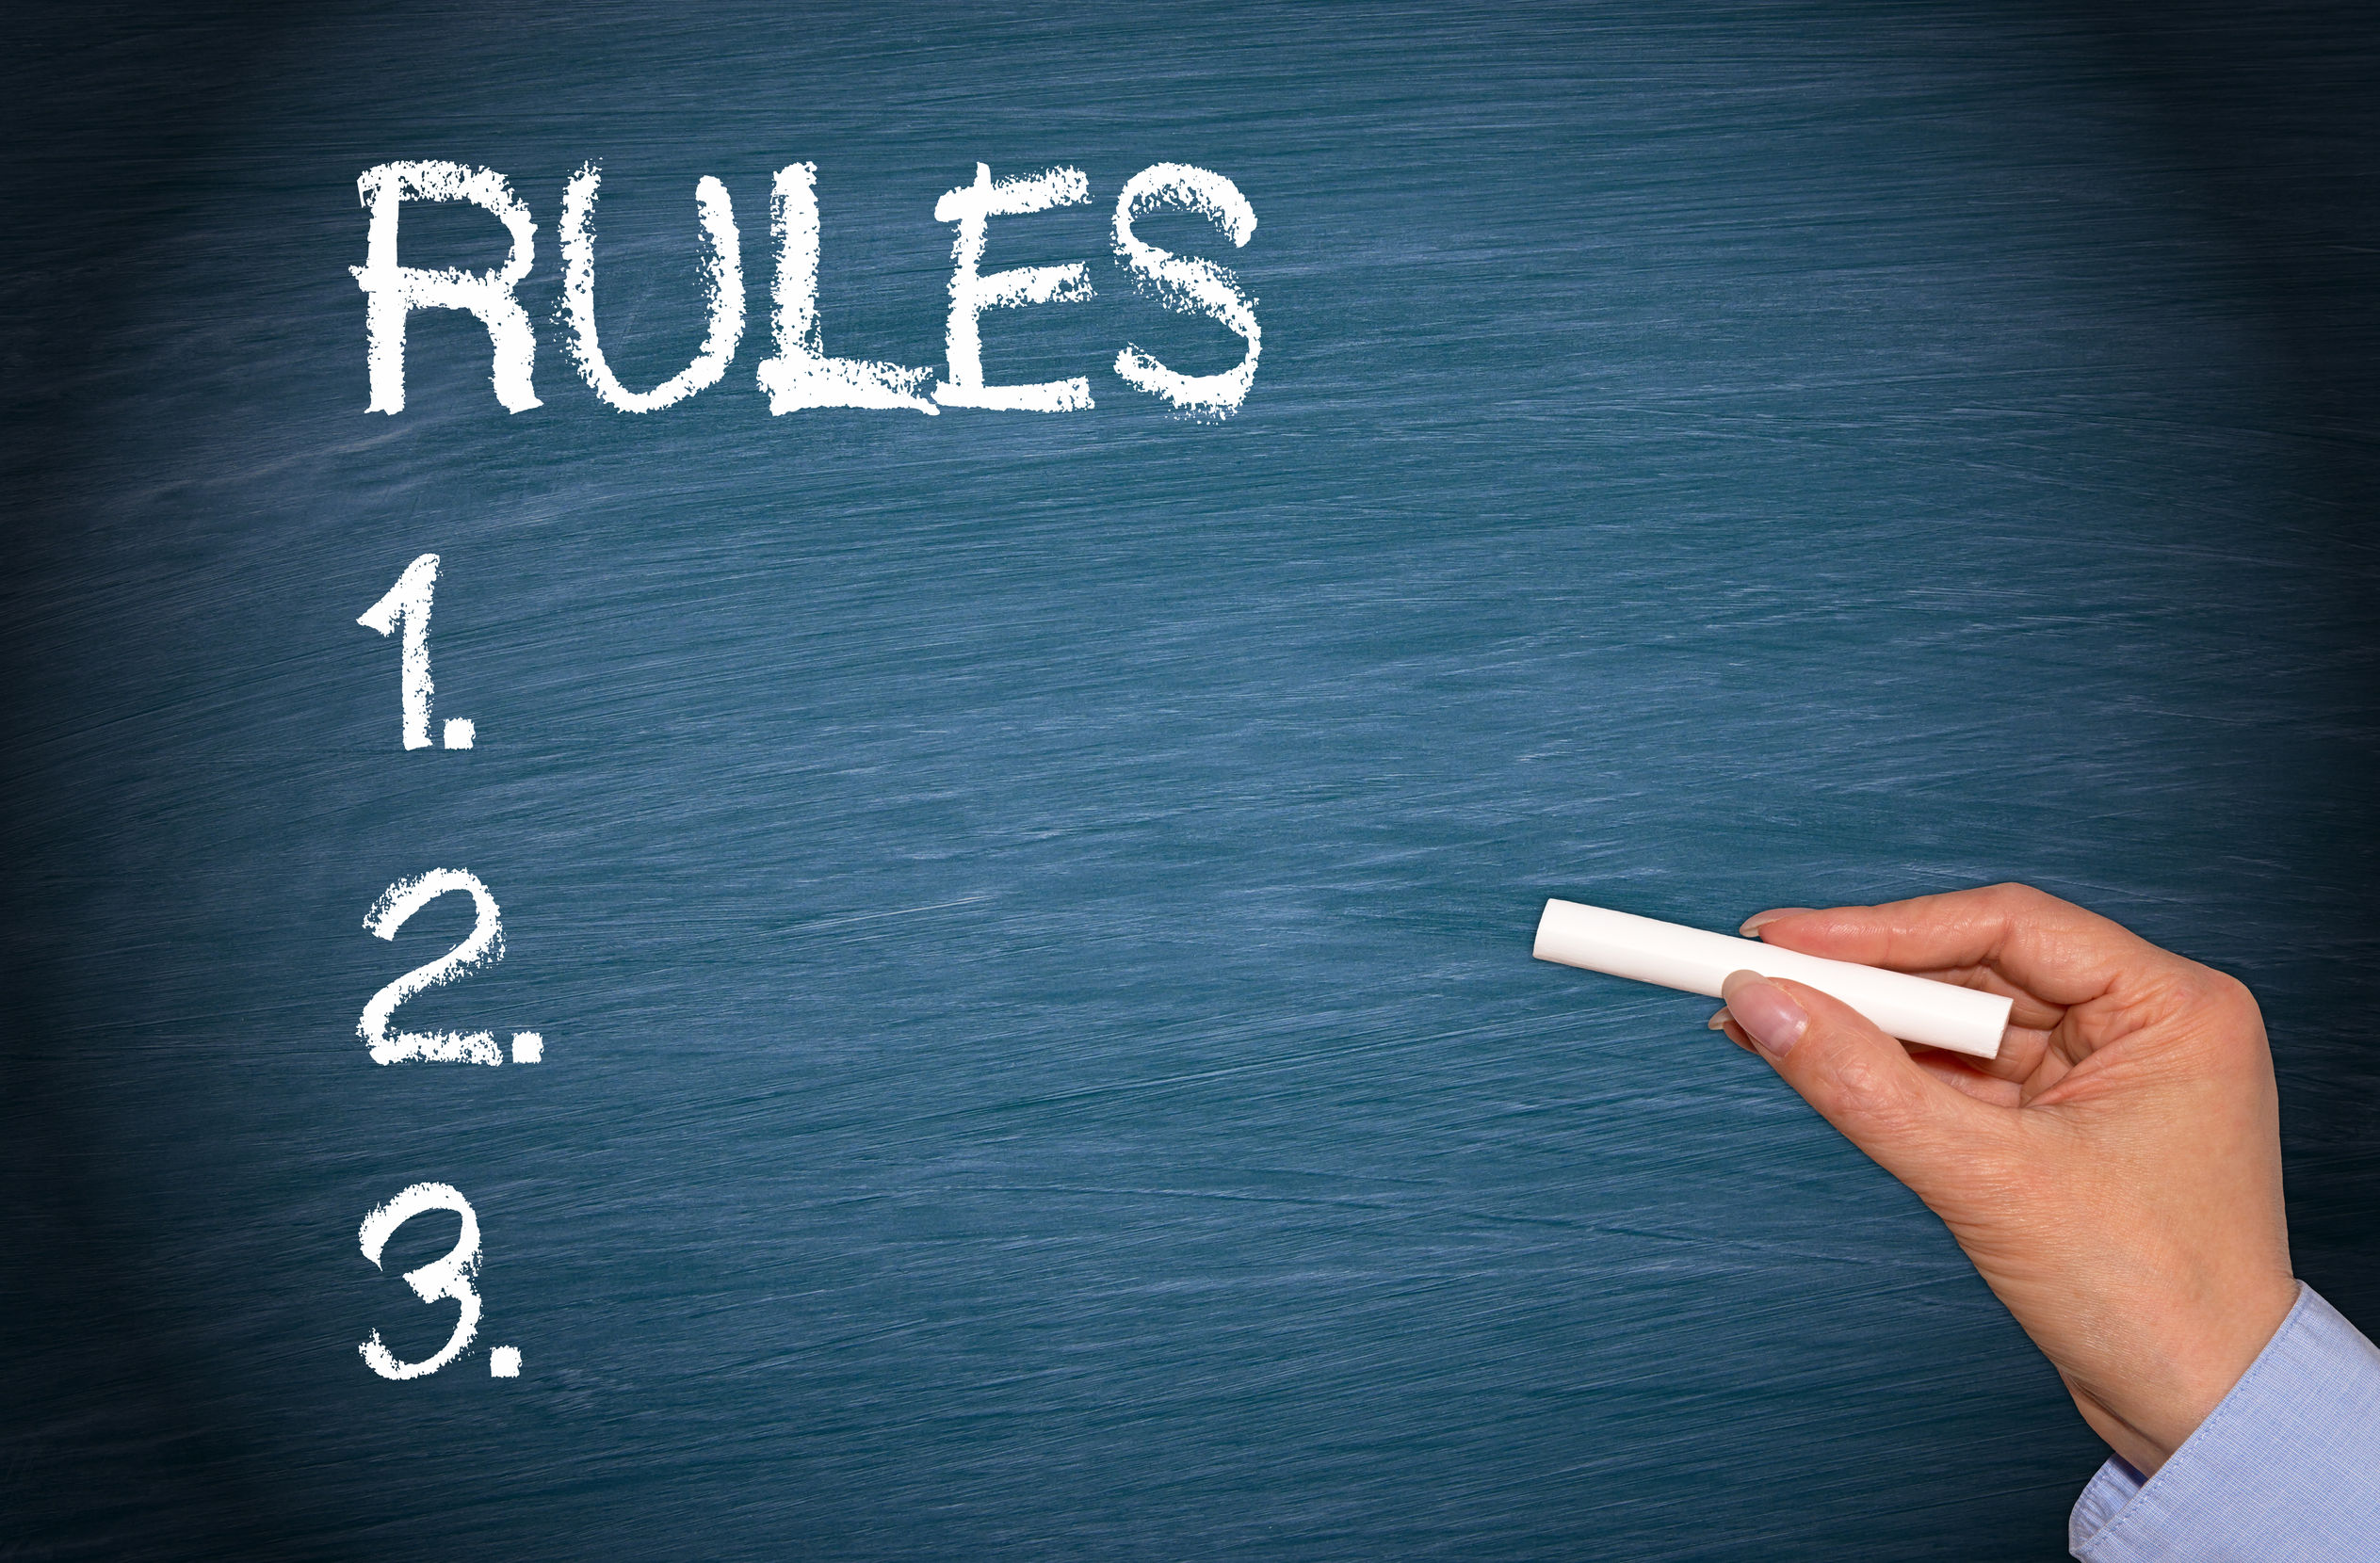 streamate rules and code of conduct